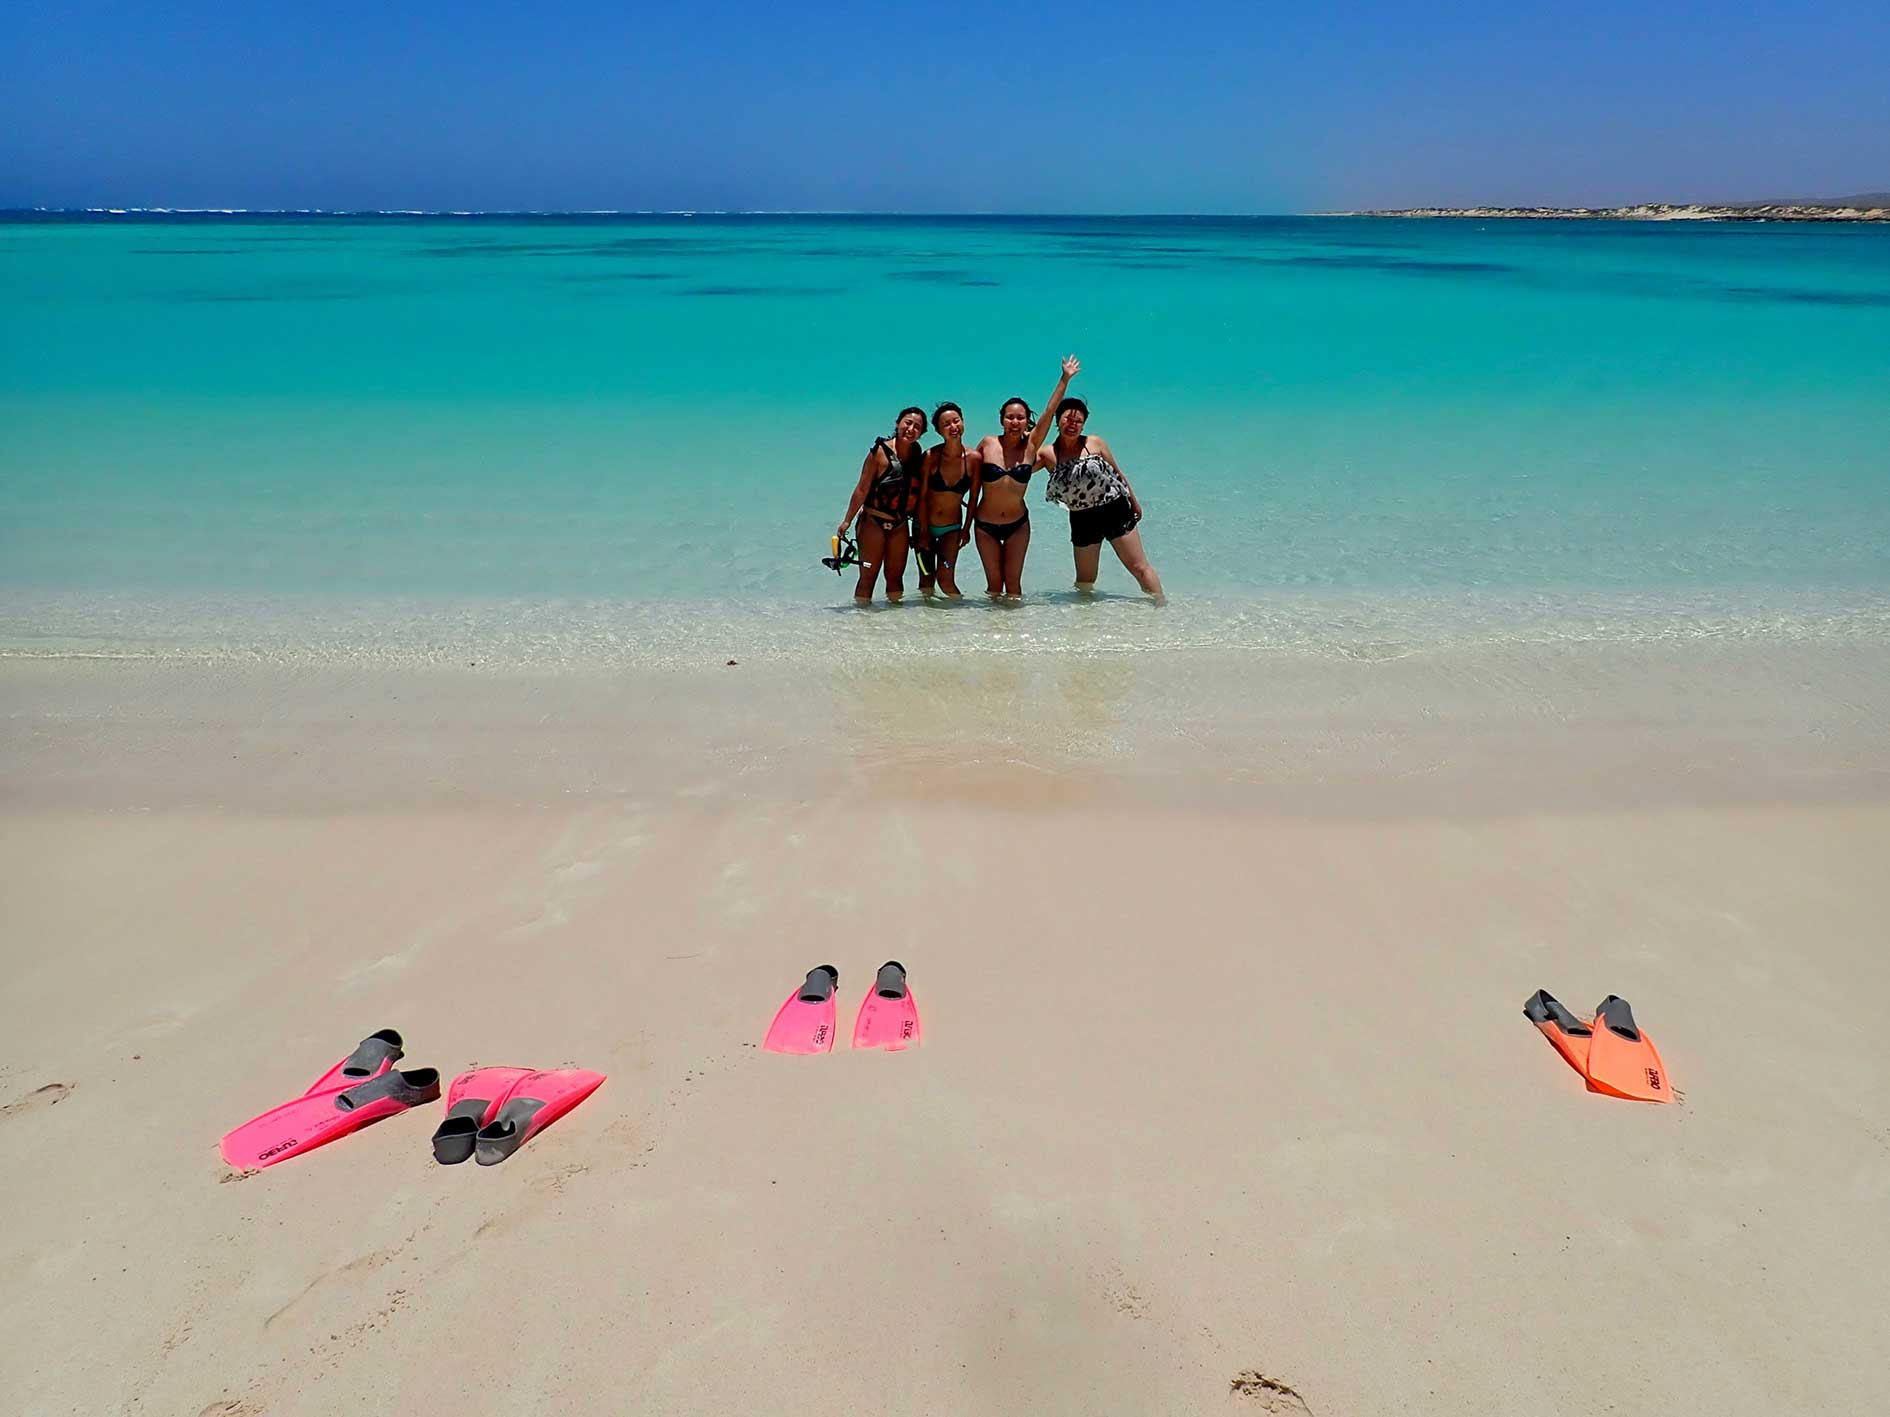 Smiling ladies stand in beautiful turquoise water at Turquoise Bay on guided snorkelling tour